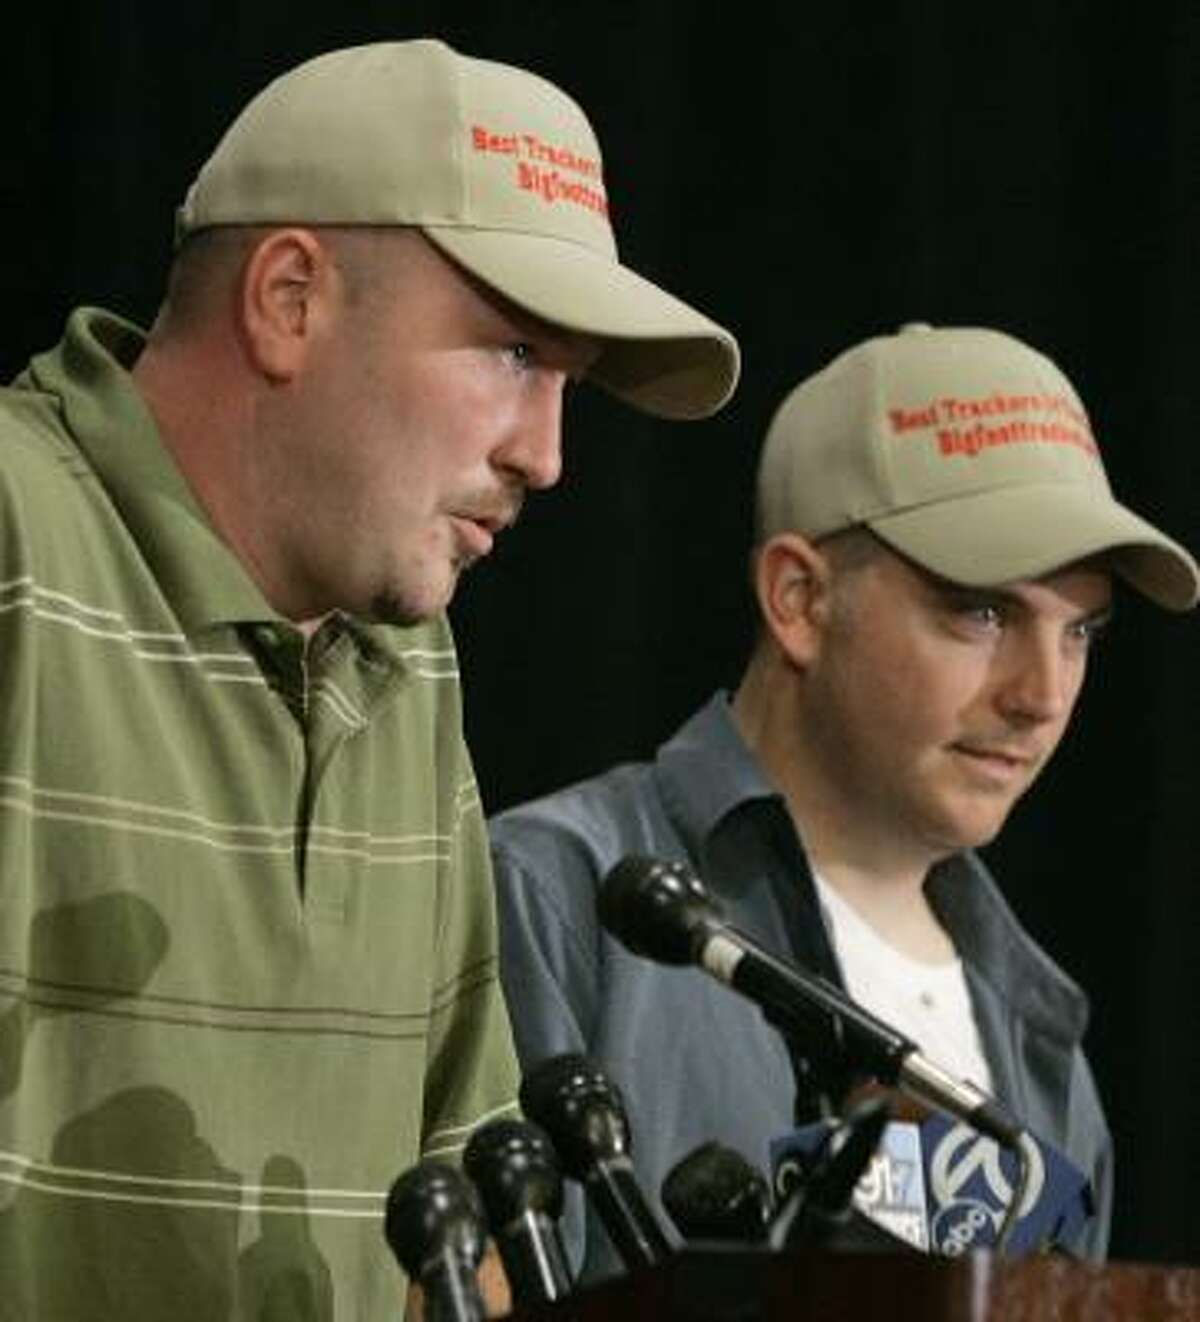 Rick Dyer, left, and Matthew Whitton answer questions during a news conference Friday at which they claimed to have a dead Bigfoot in their possession.